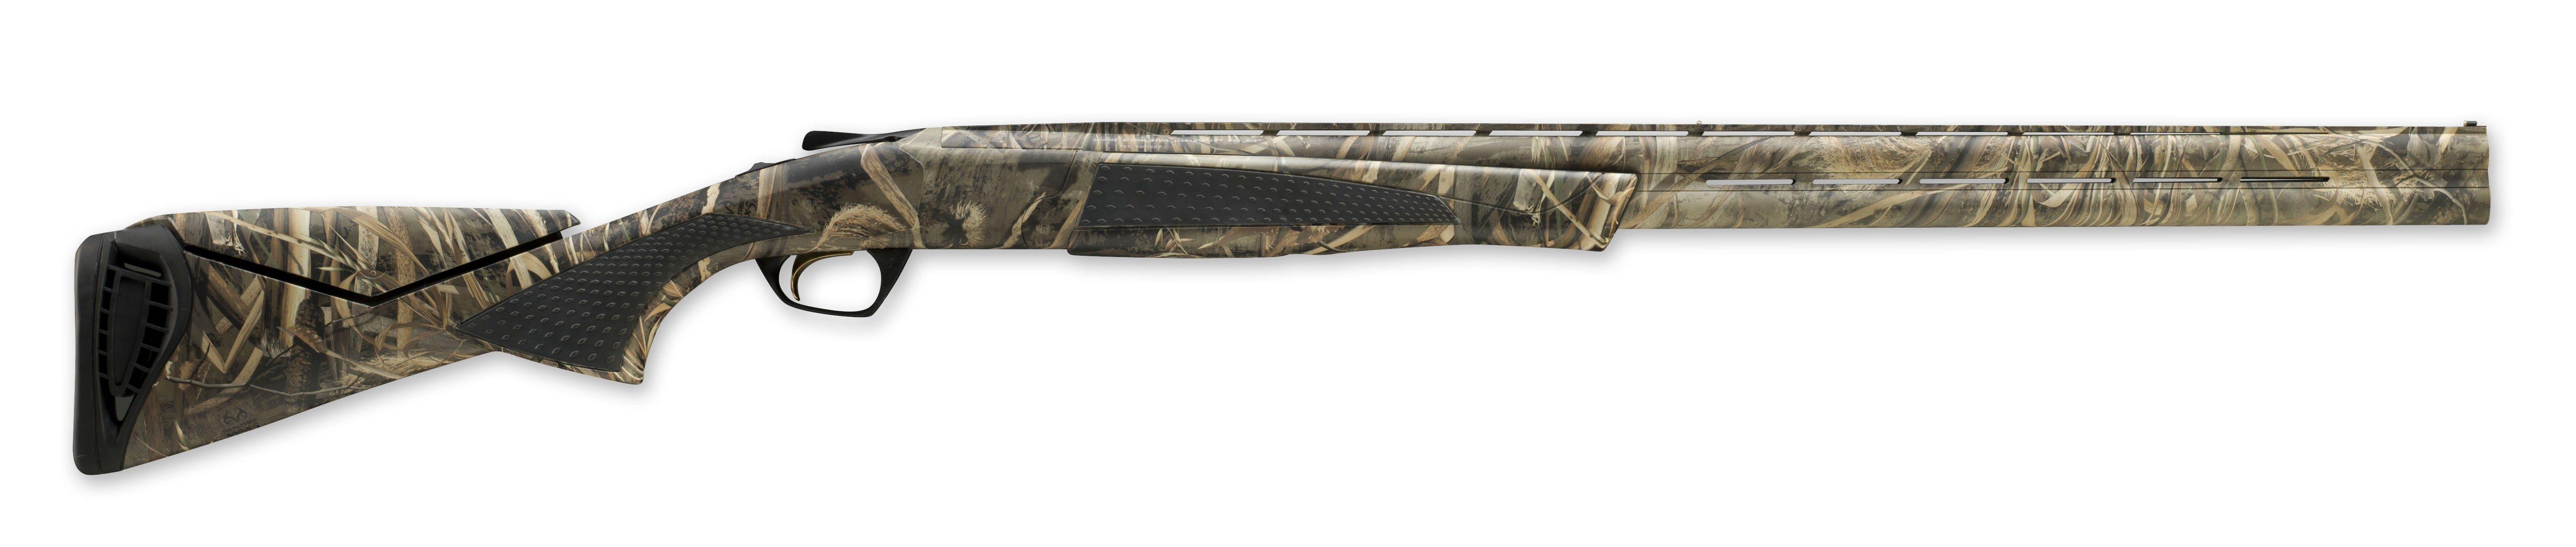 Cynergy Realtree Max 5